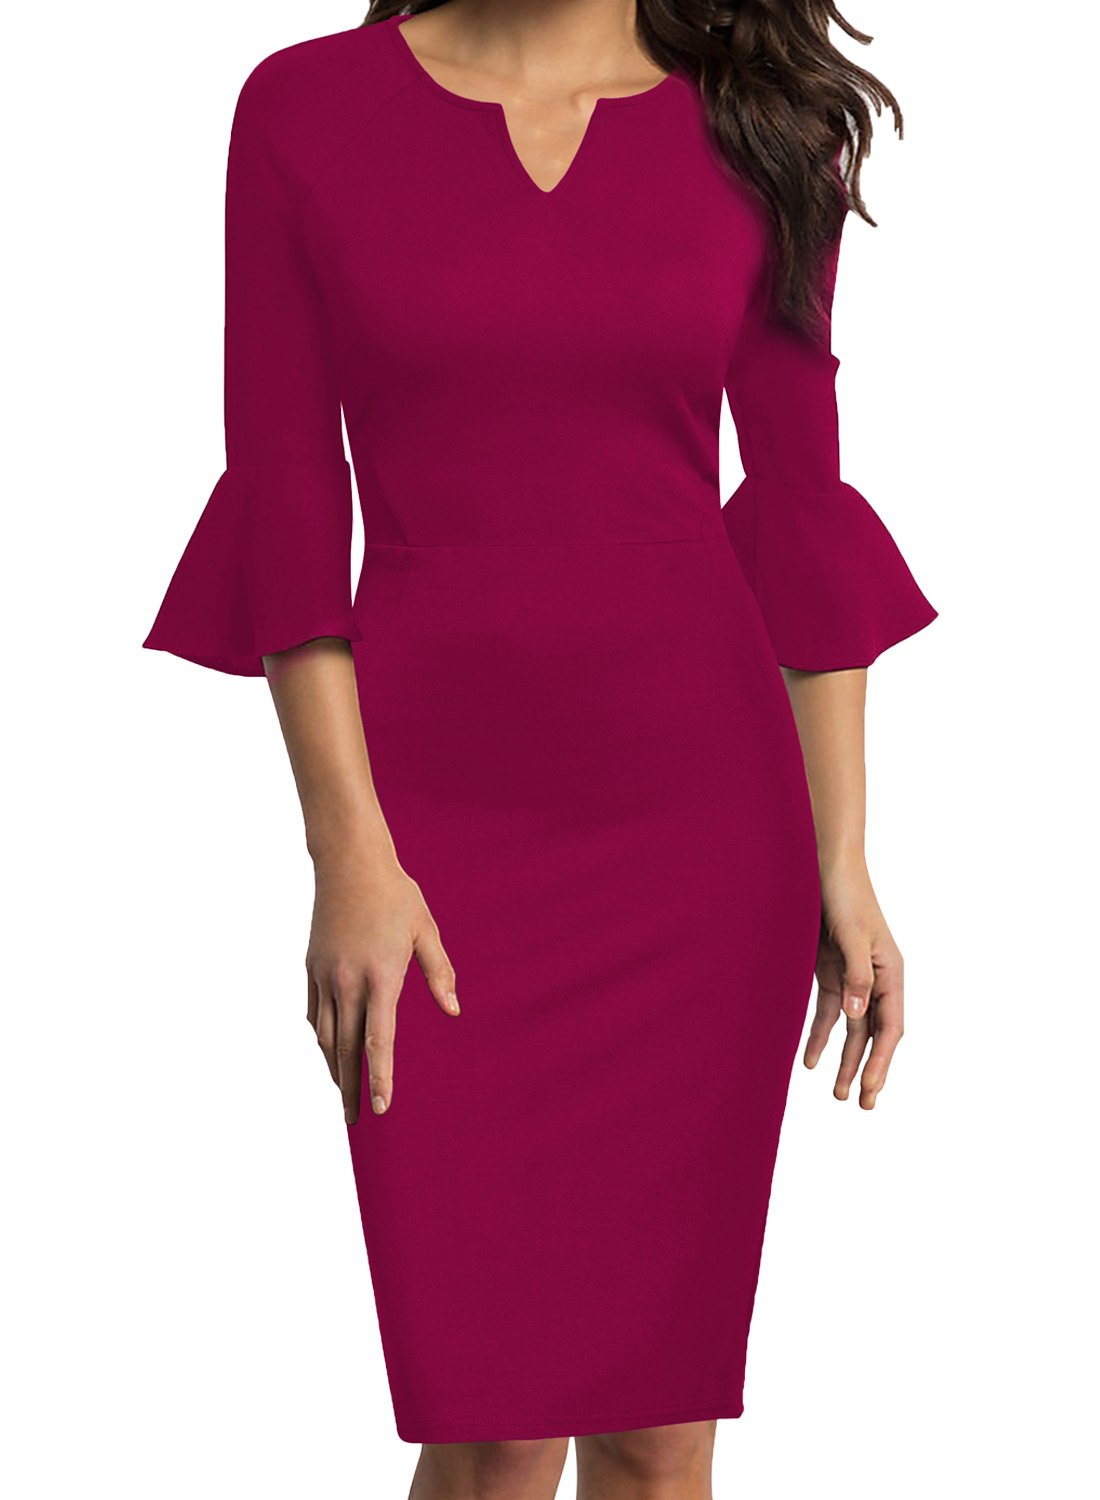 WOOSUNZE Womens Flounce Bell Sleeve Office Work Casual Pencil Dress (Magenta, Small)